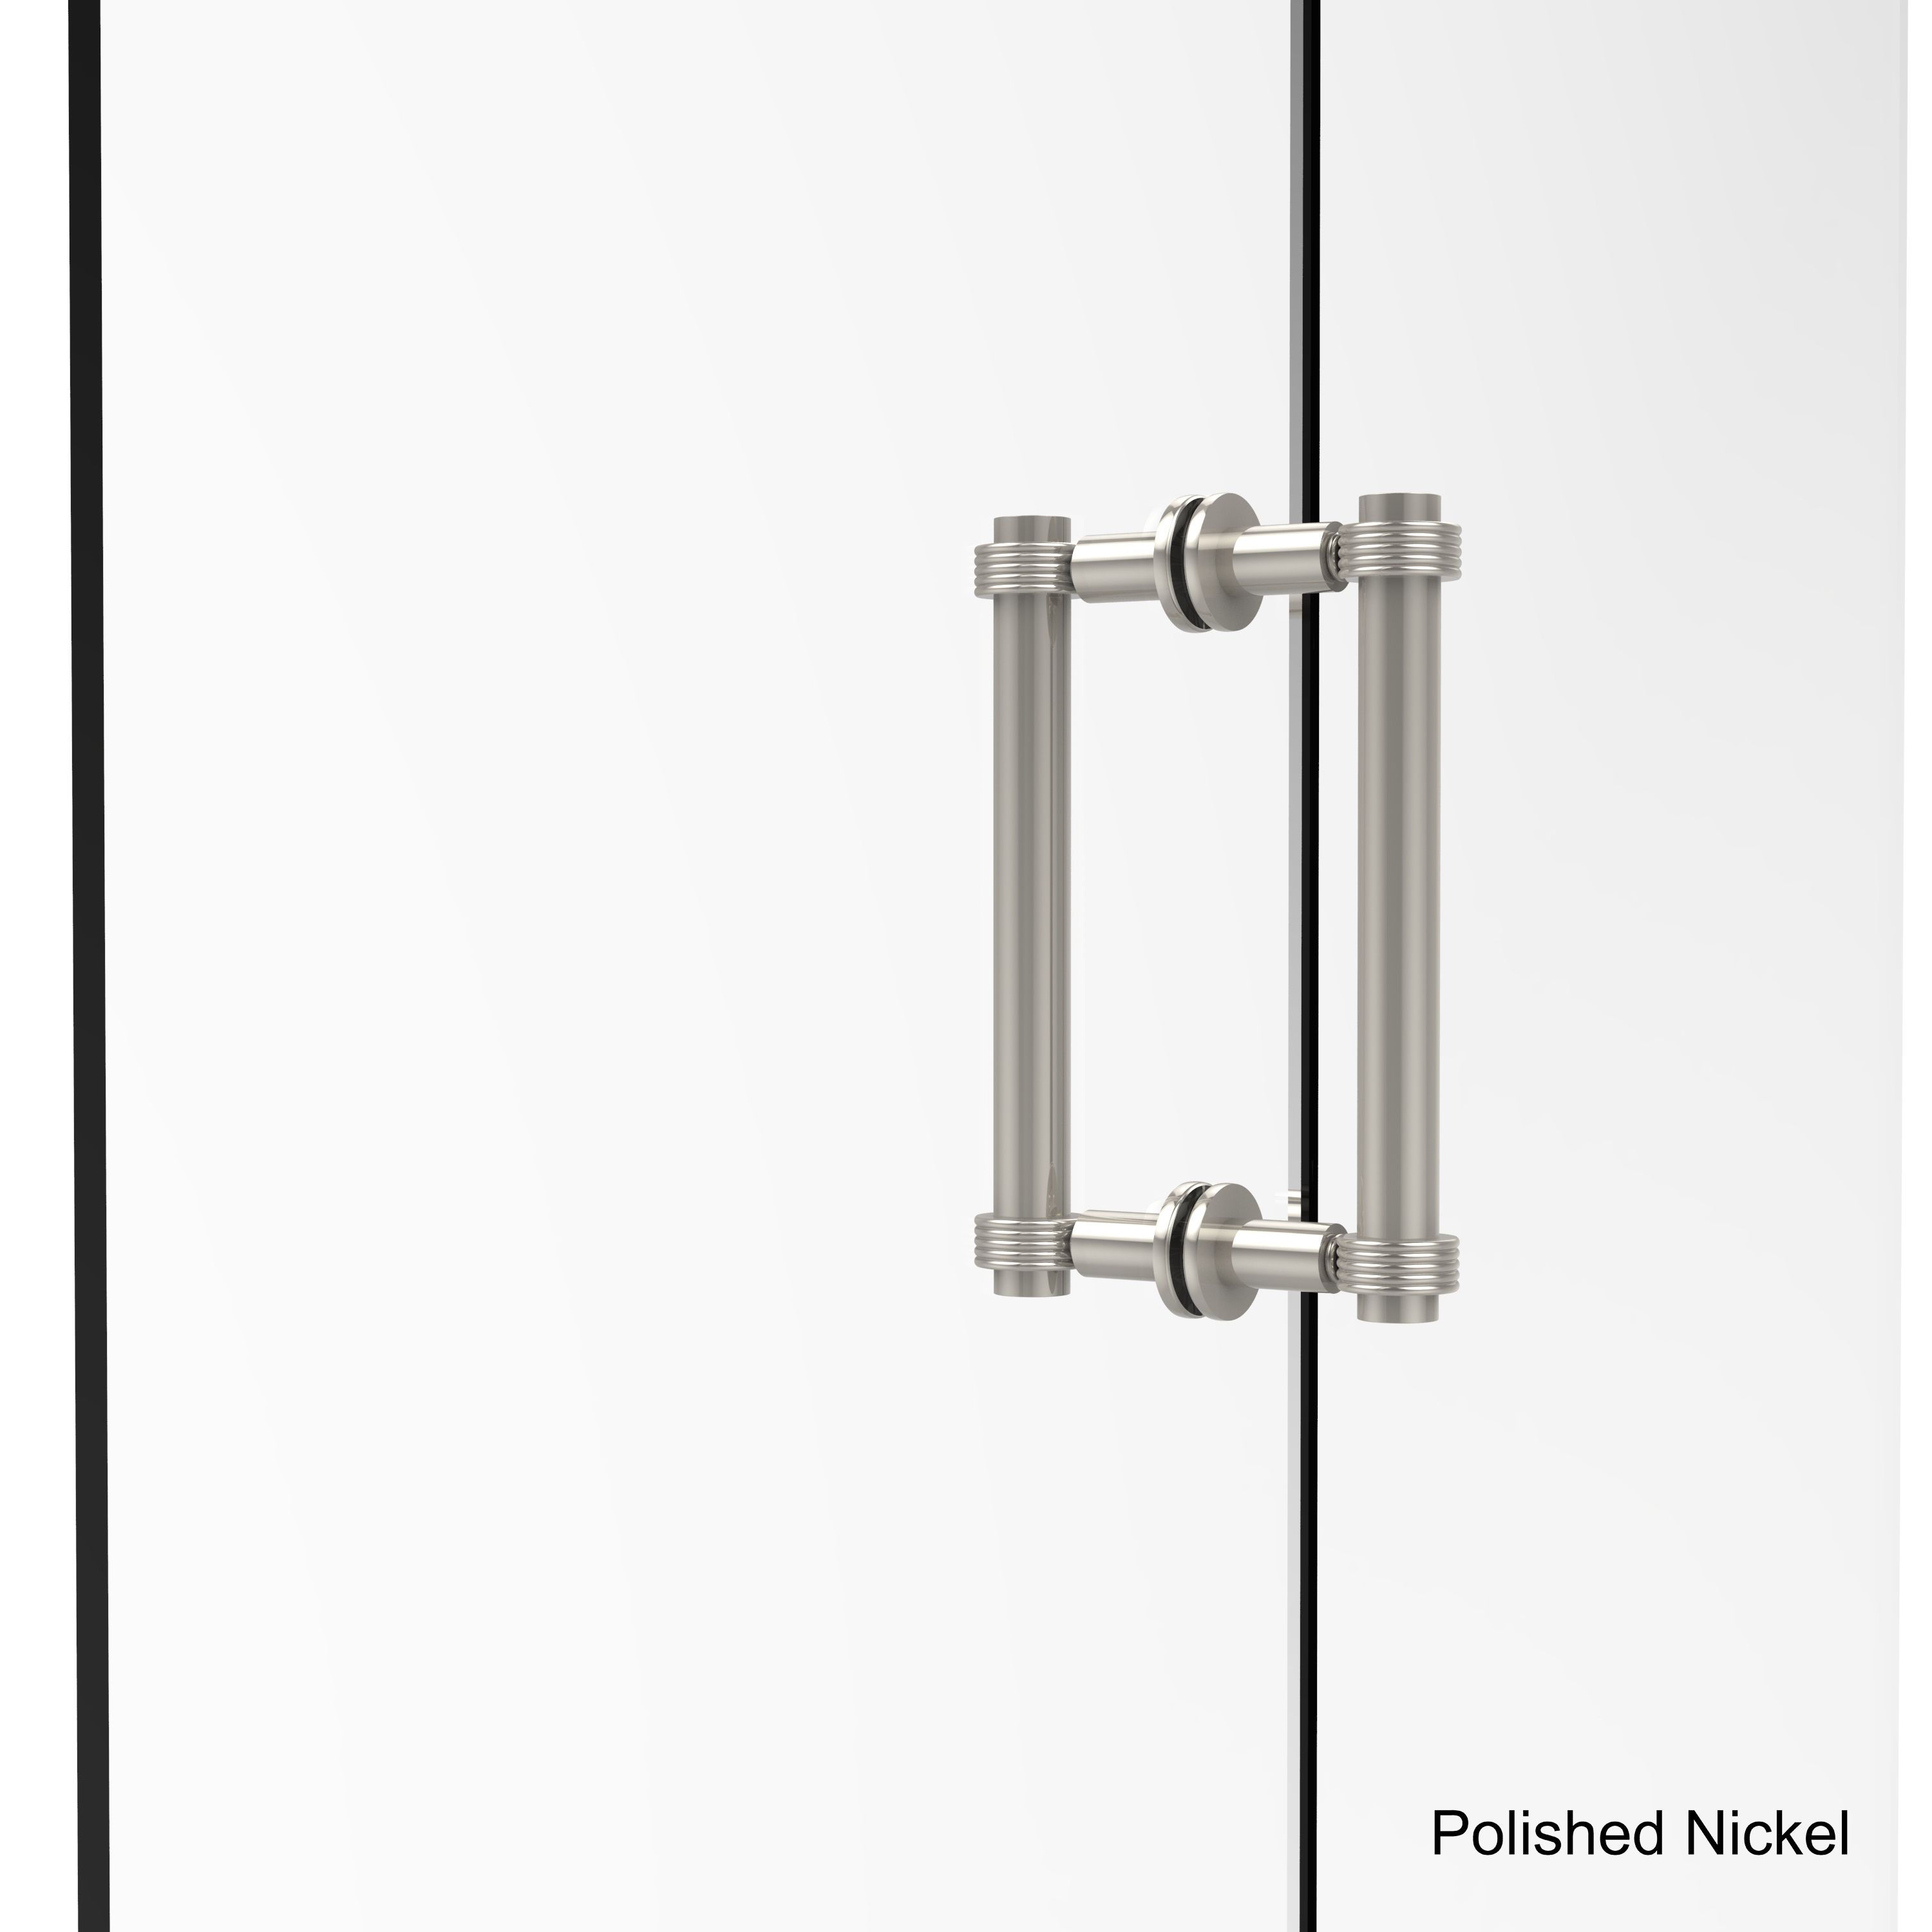 Allied Brass Contemporary 8-inch Back-to-back Grooved Accent Shower Door Pull (Polished Nickel)